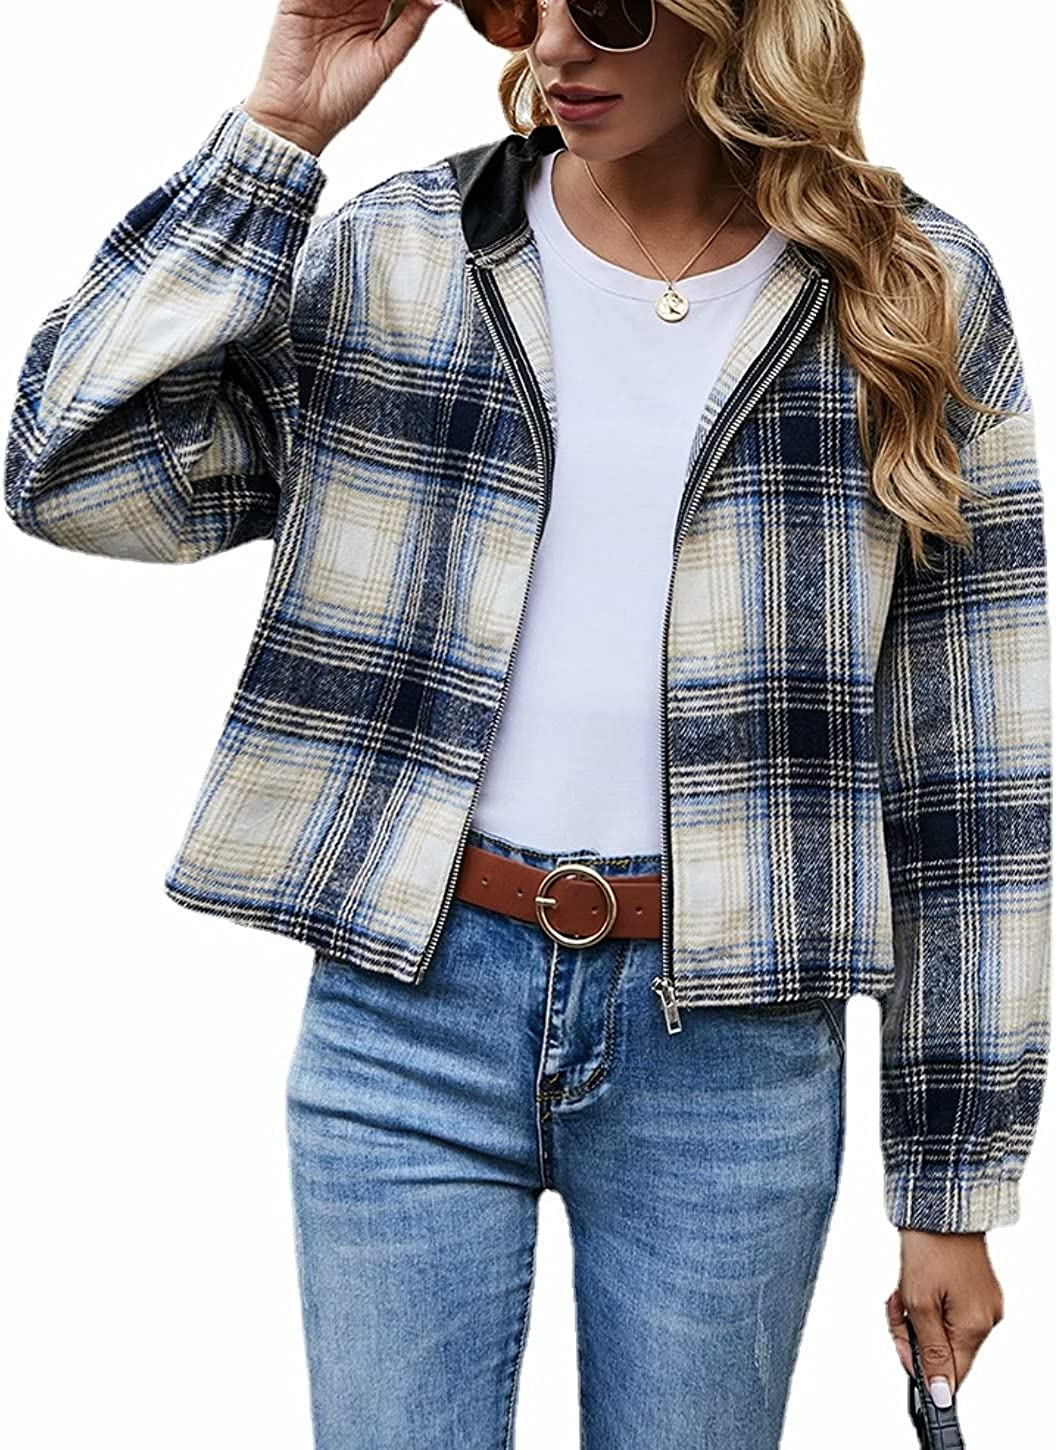 Hooded Plaid Flannel Shirt Jackets for Womens Casual Loose Elastic Cuffs Zip Up Short Cropped Shackets Coat